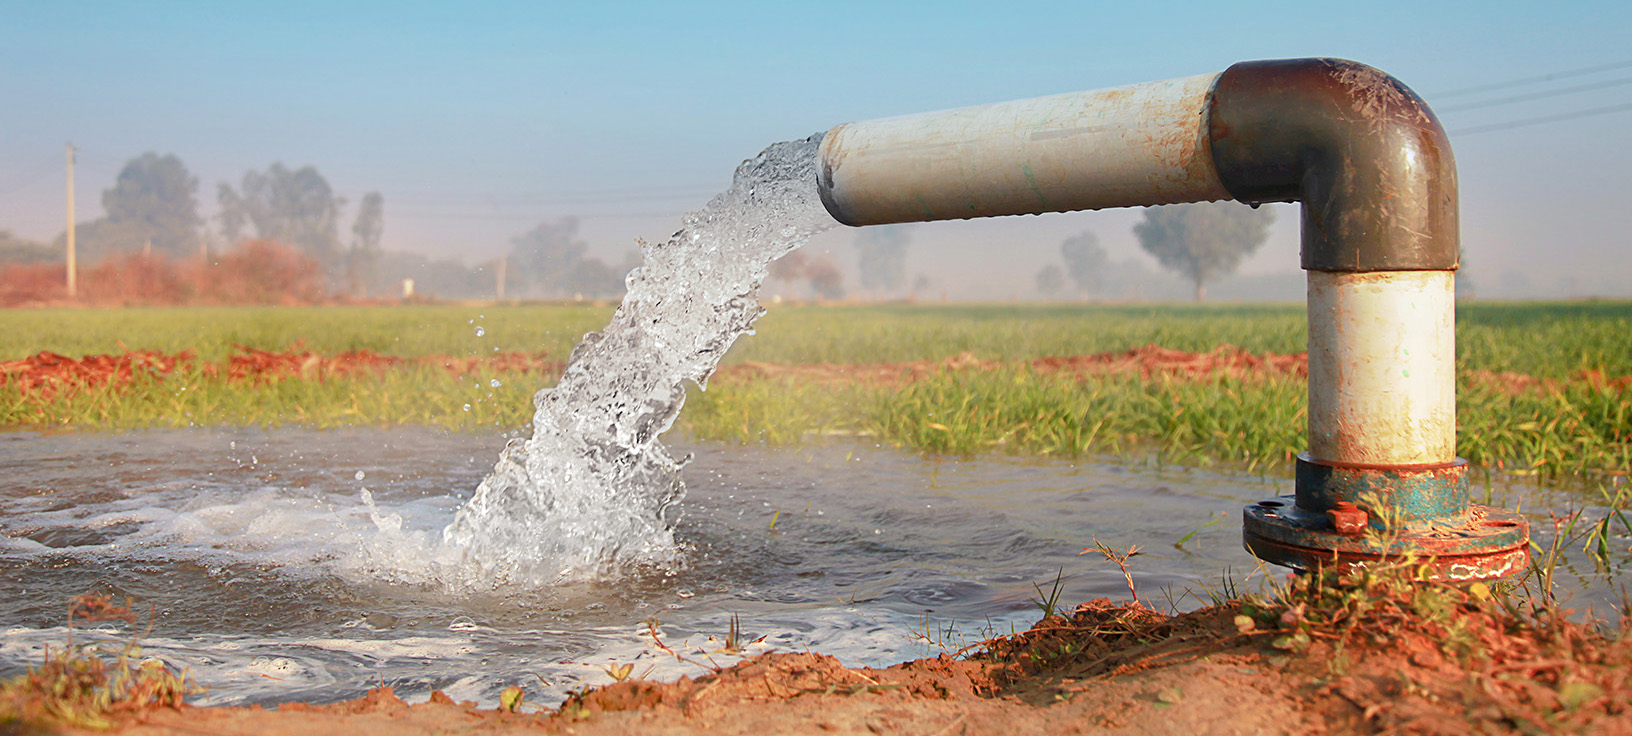 An innovative, community-based approach to irrigation asset management in India